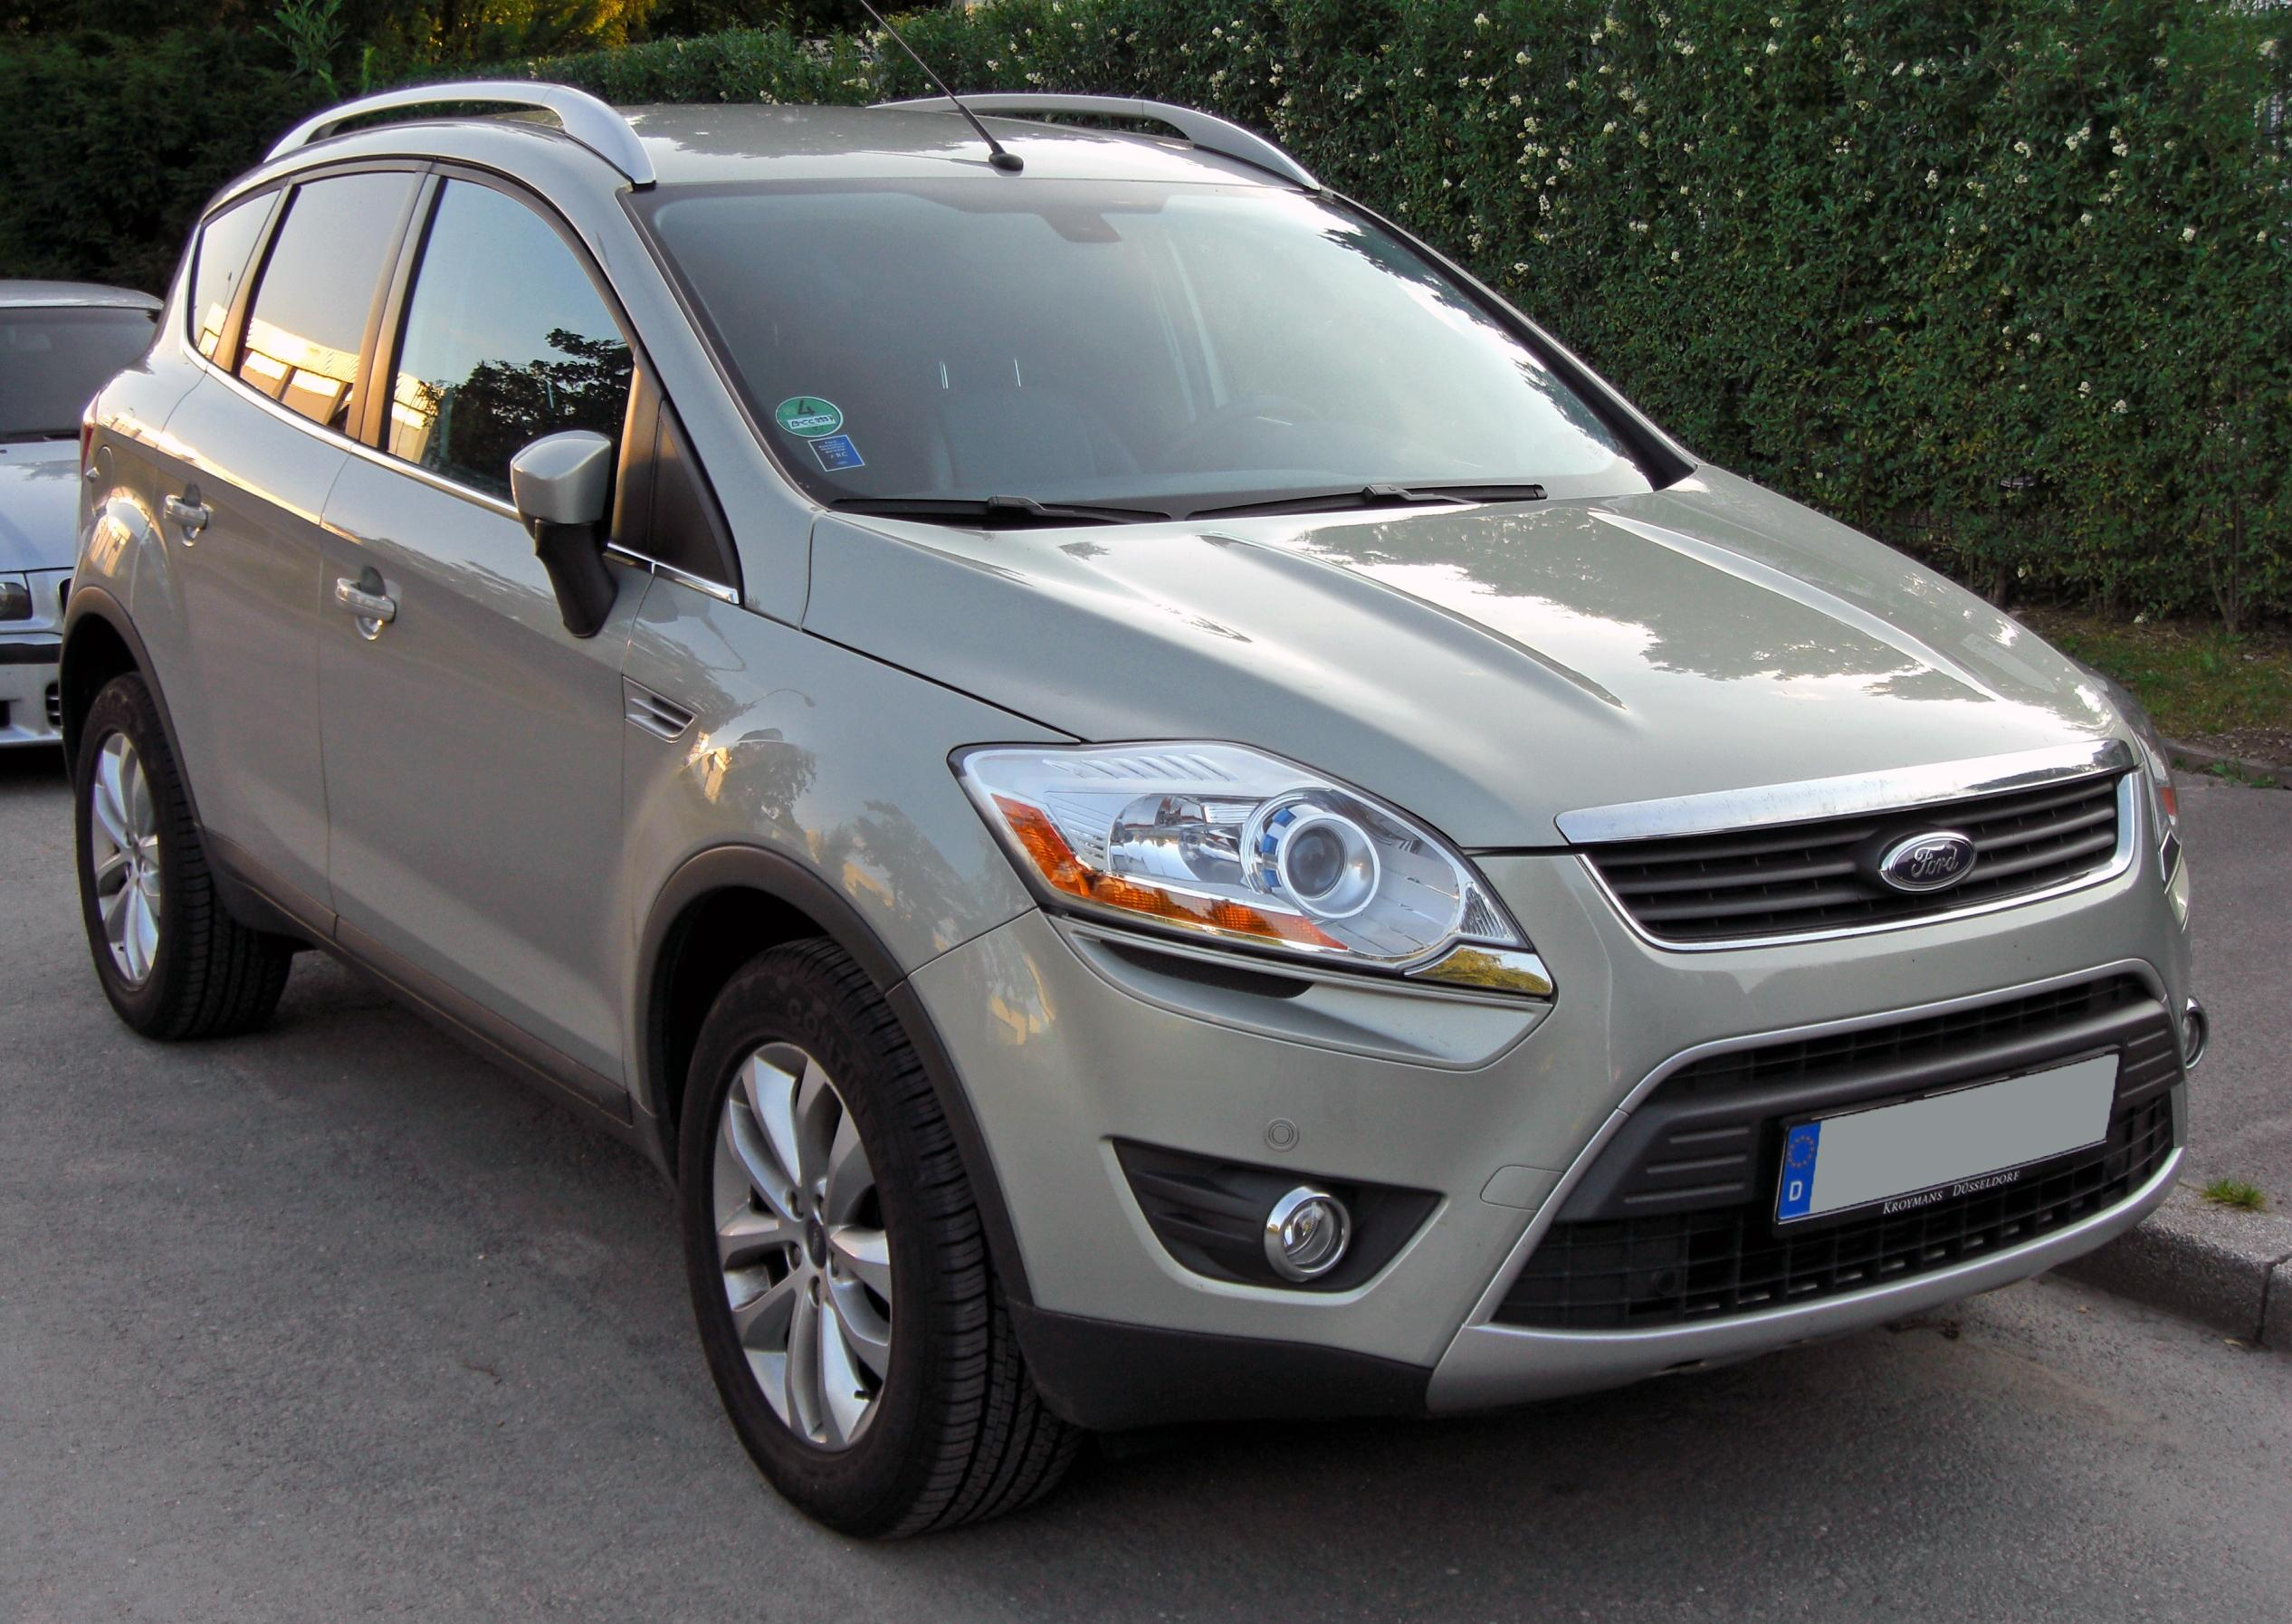 ford kuga seriess #1